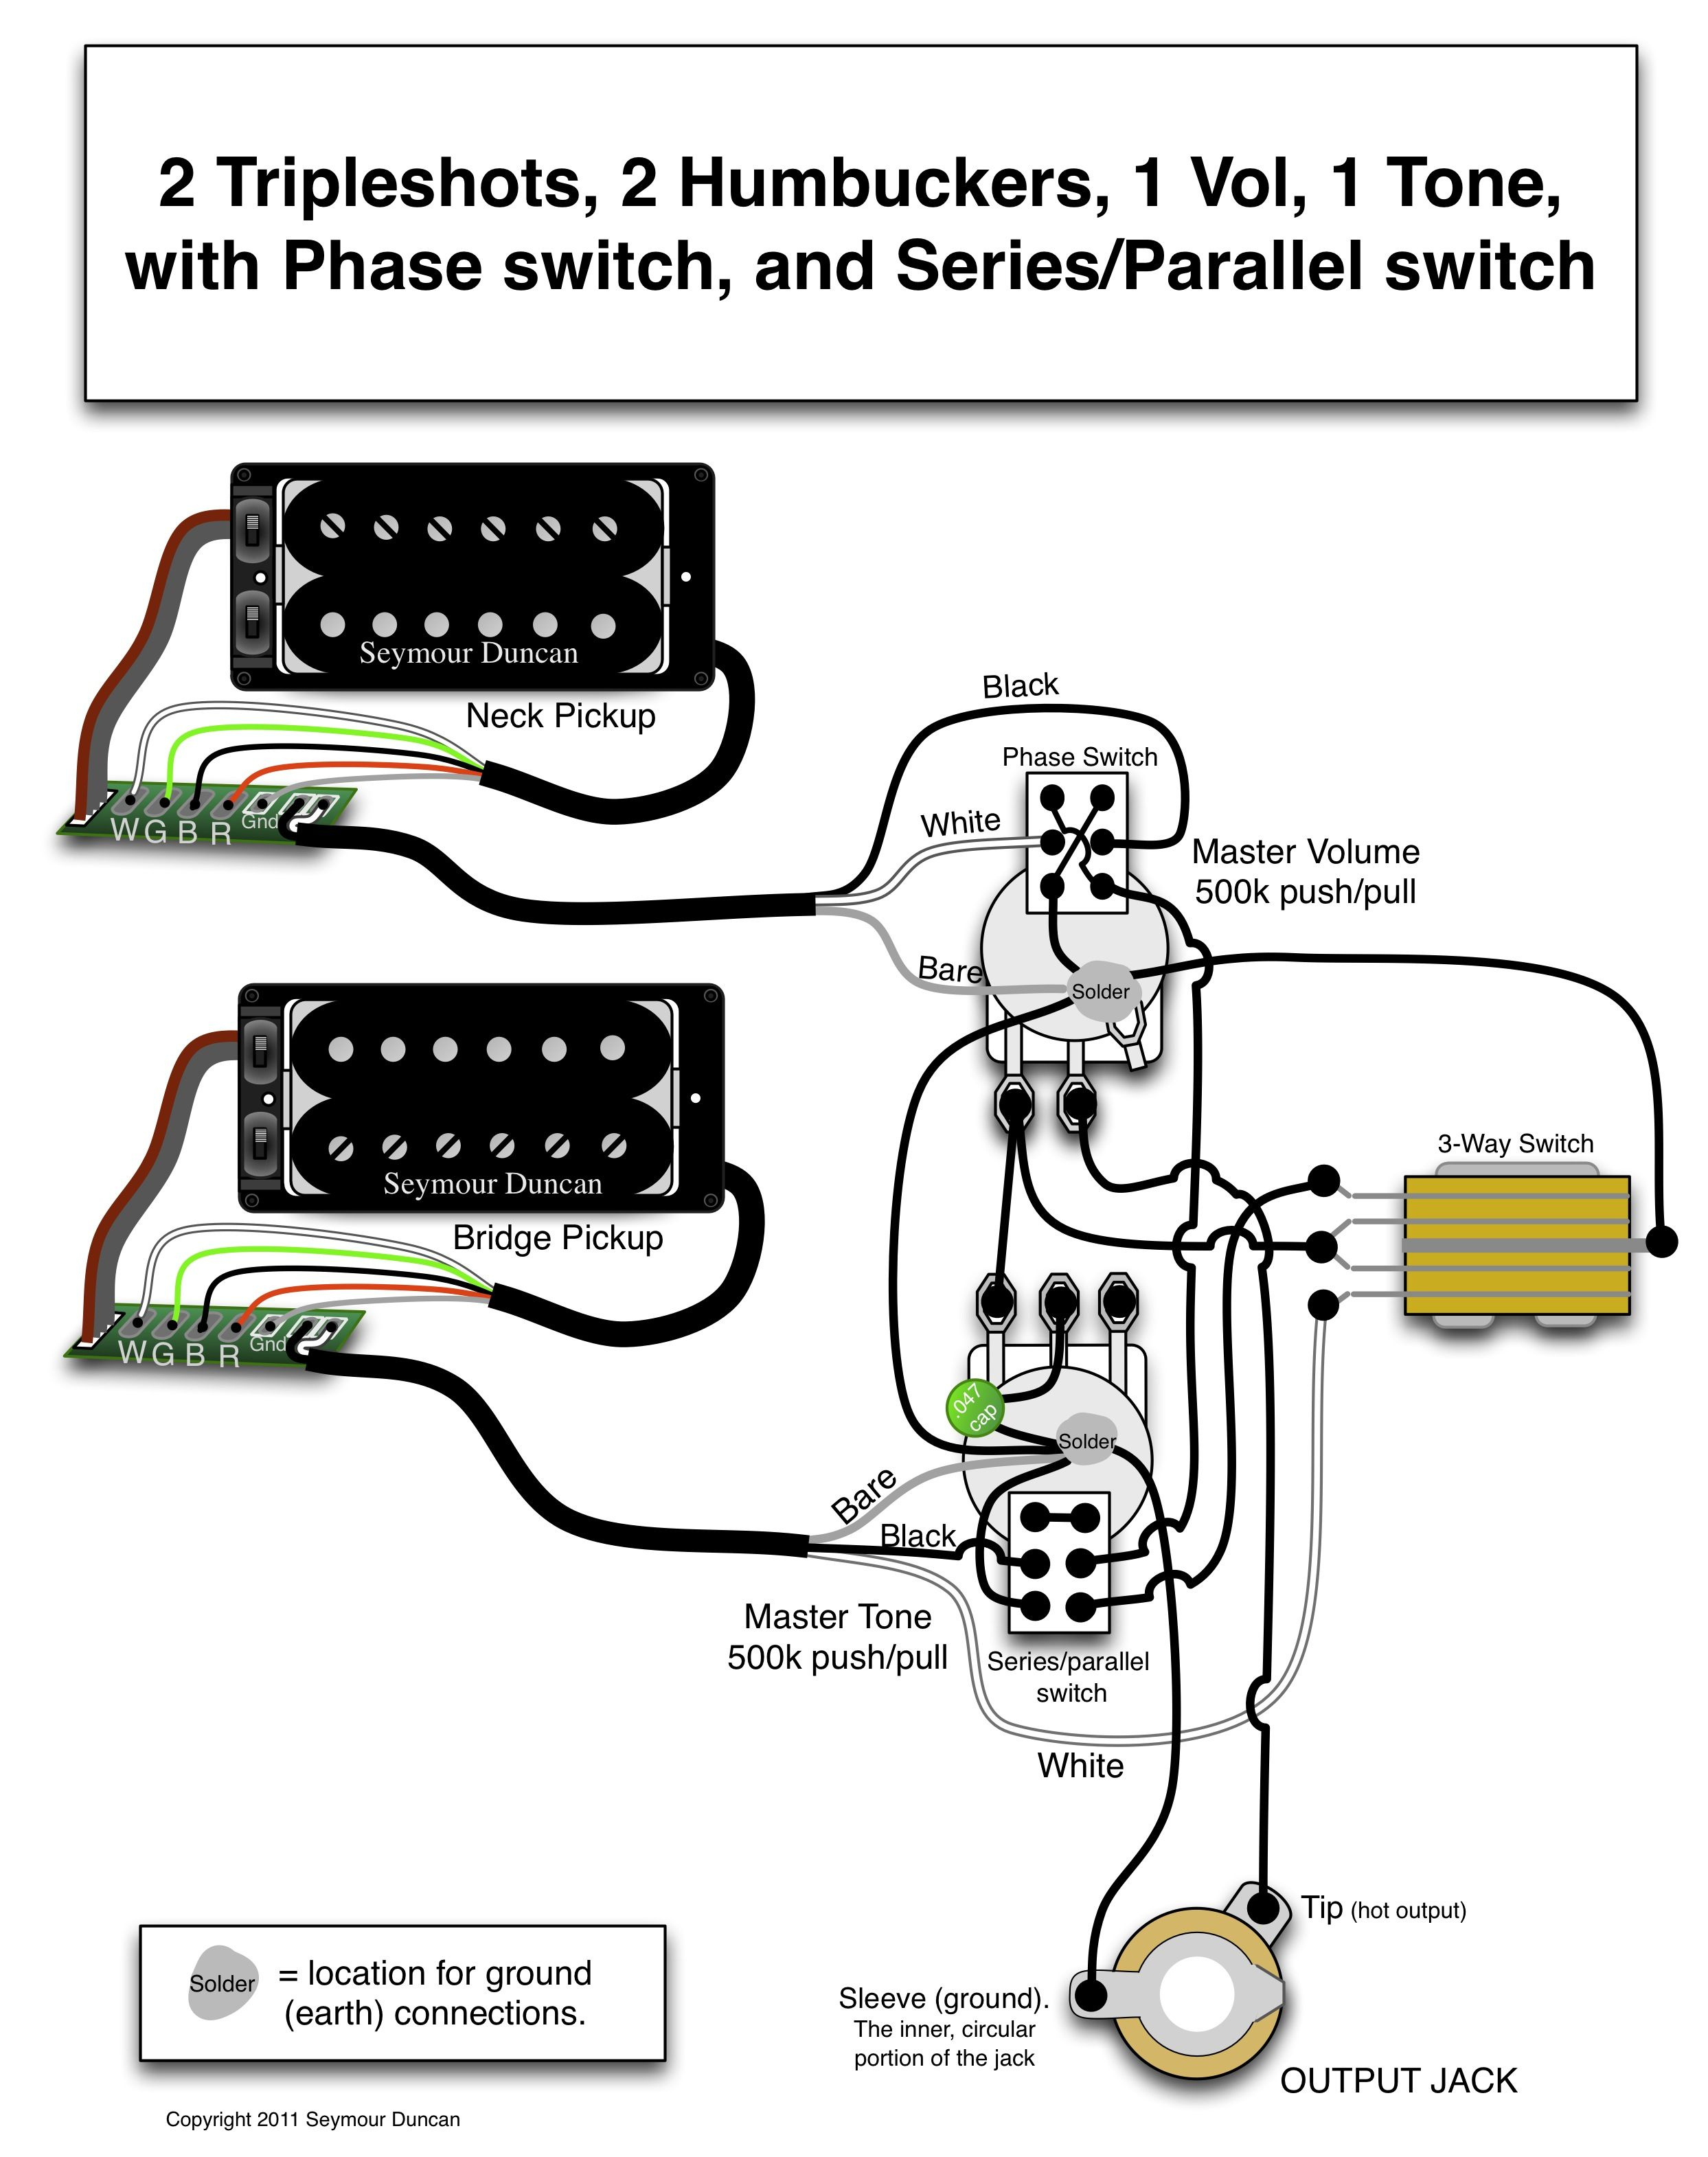 Seymour Duncan Wiring Diagram - 2 Triple Shots, 2 Humbuckers, 1 Vol - Seymour Duncan Wiring Diagram